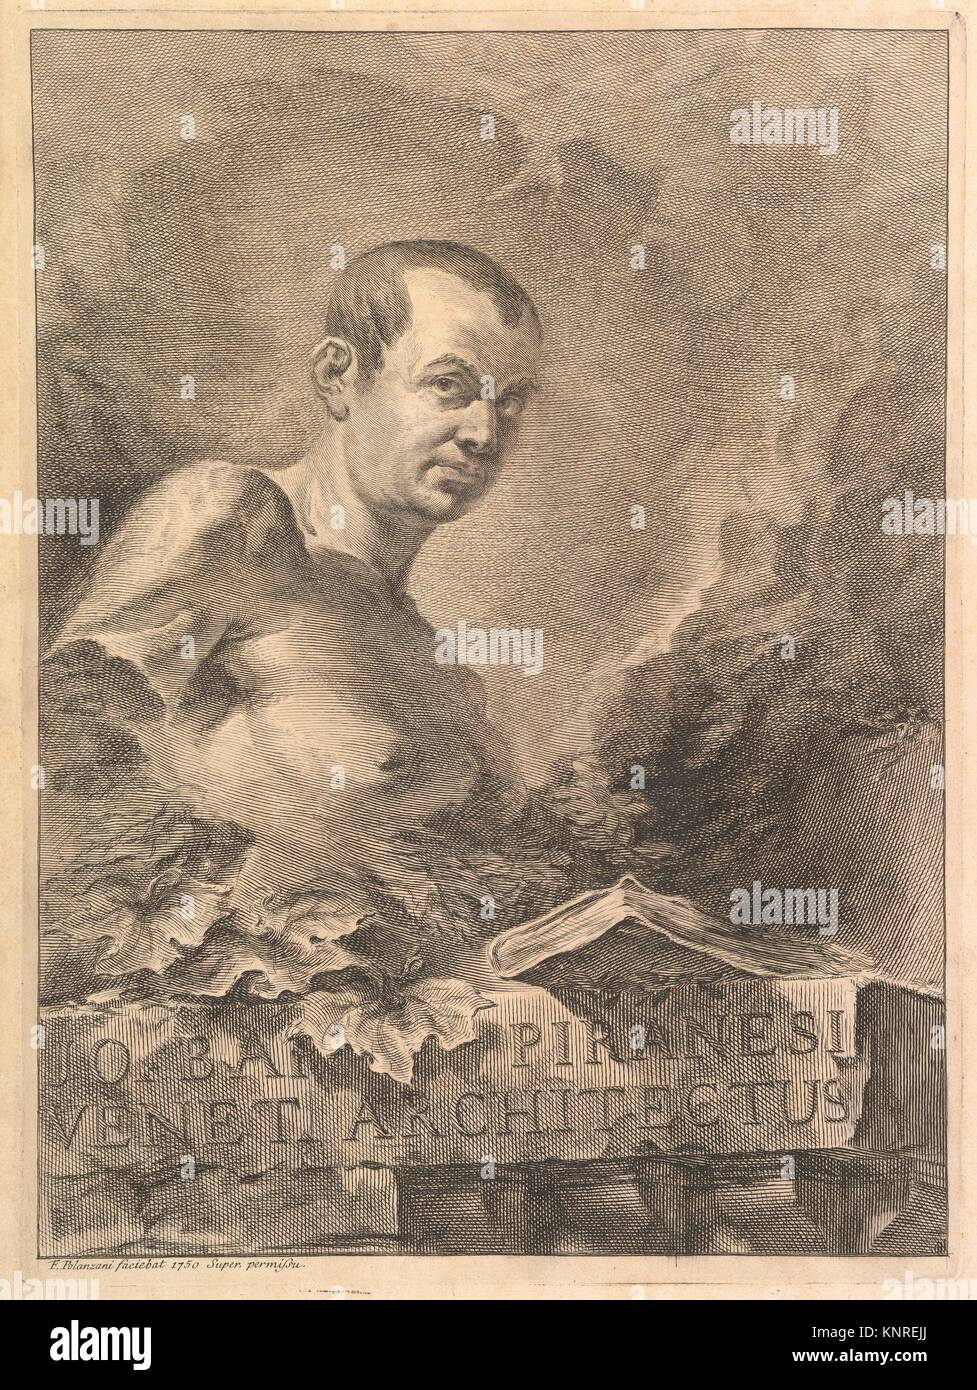 Portrait of G.B. Piranesi in imitation of an antique bust, from Opere varie di Architettura, prospetive, grotteschi, - Stock Image